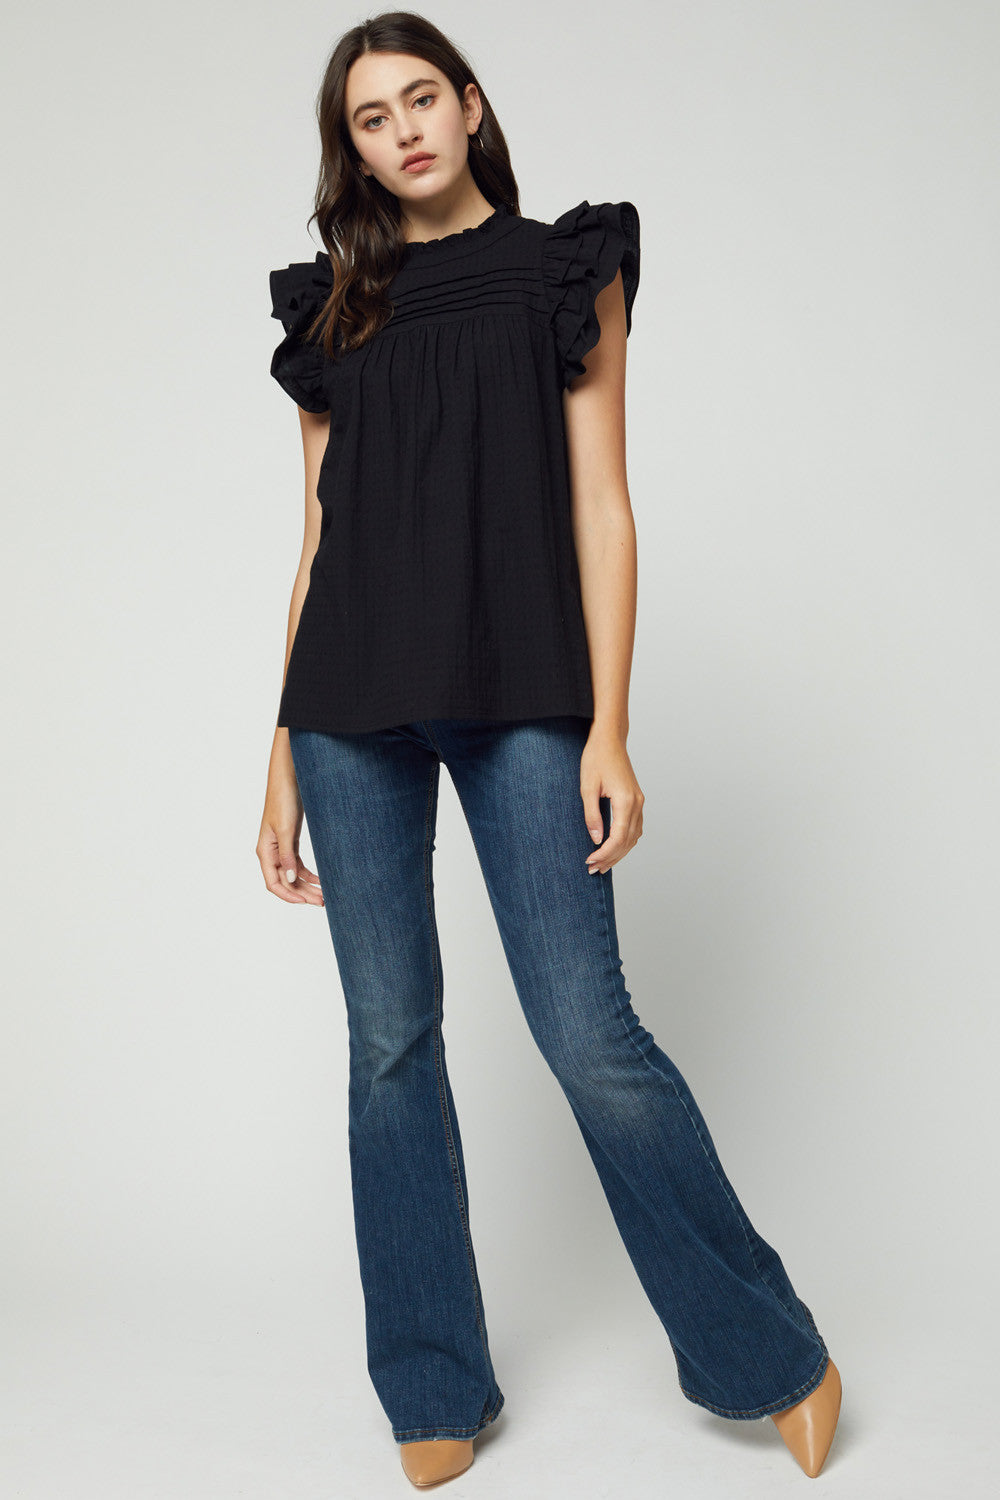 Conner Ruffle Trim Top